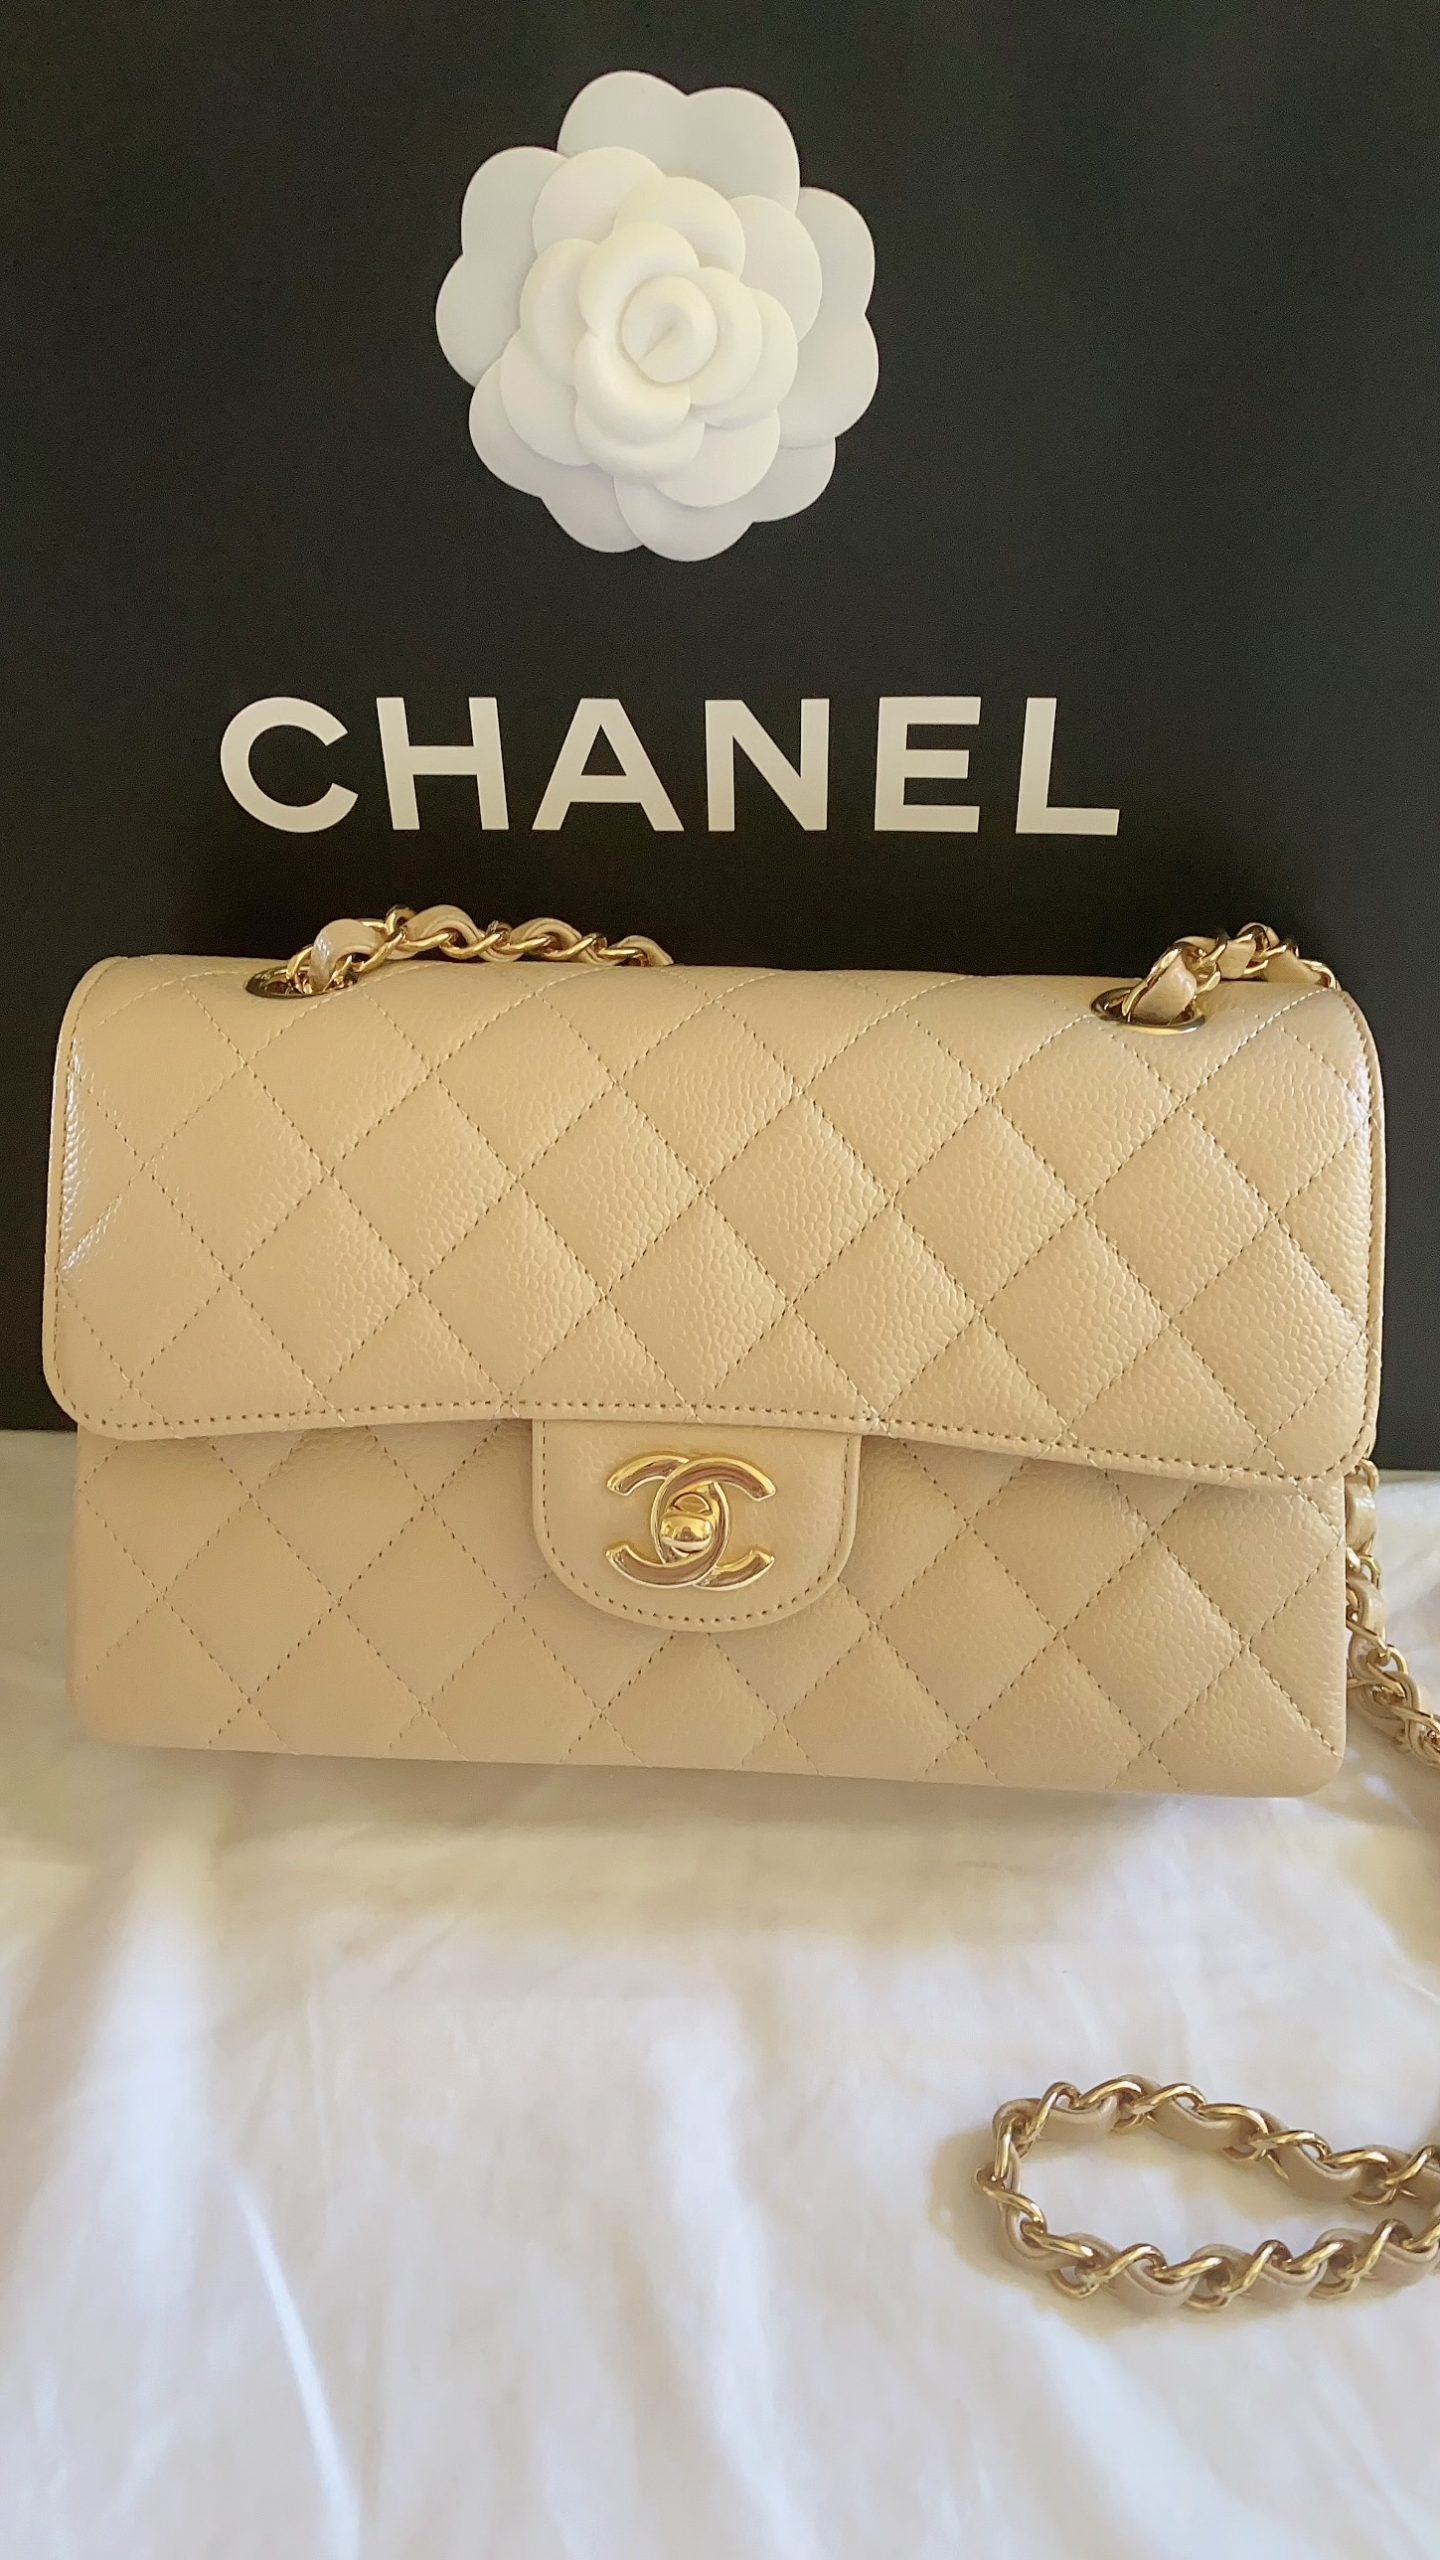 Chanel Classic Bag in Beige Clair | With Love, Vienna Lyn